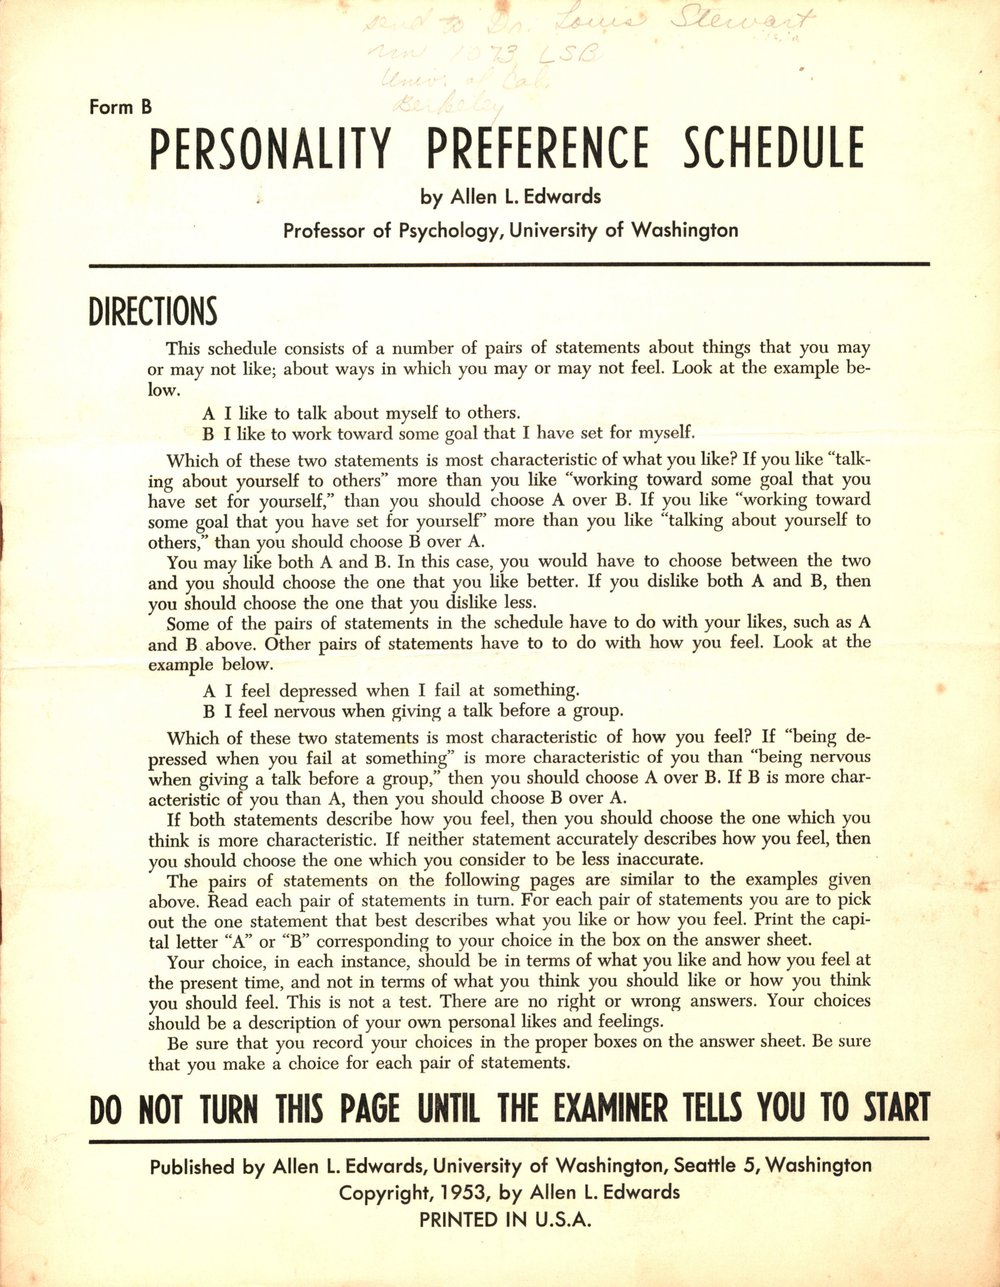 Personality Preference Schedule (1953)